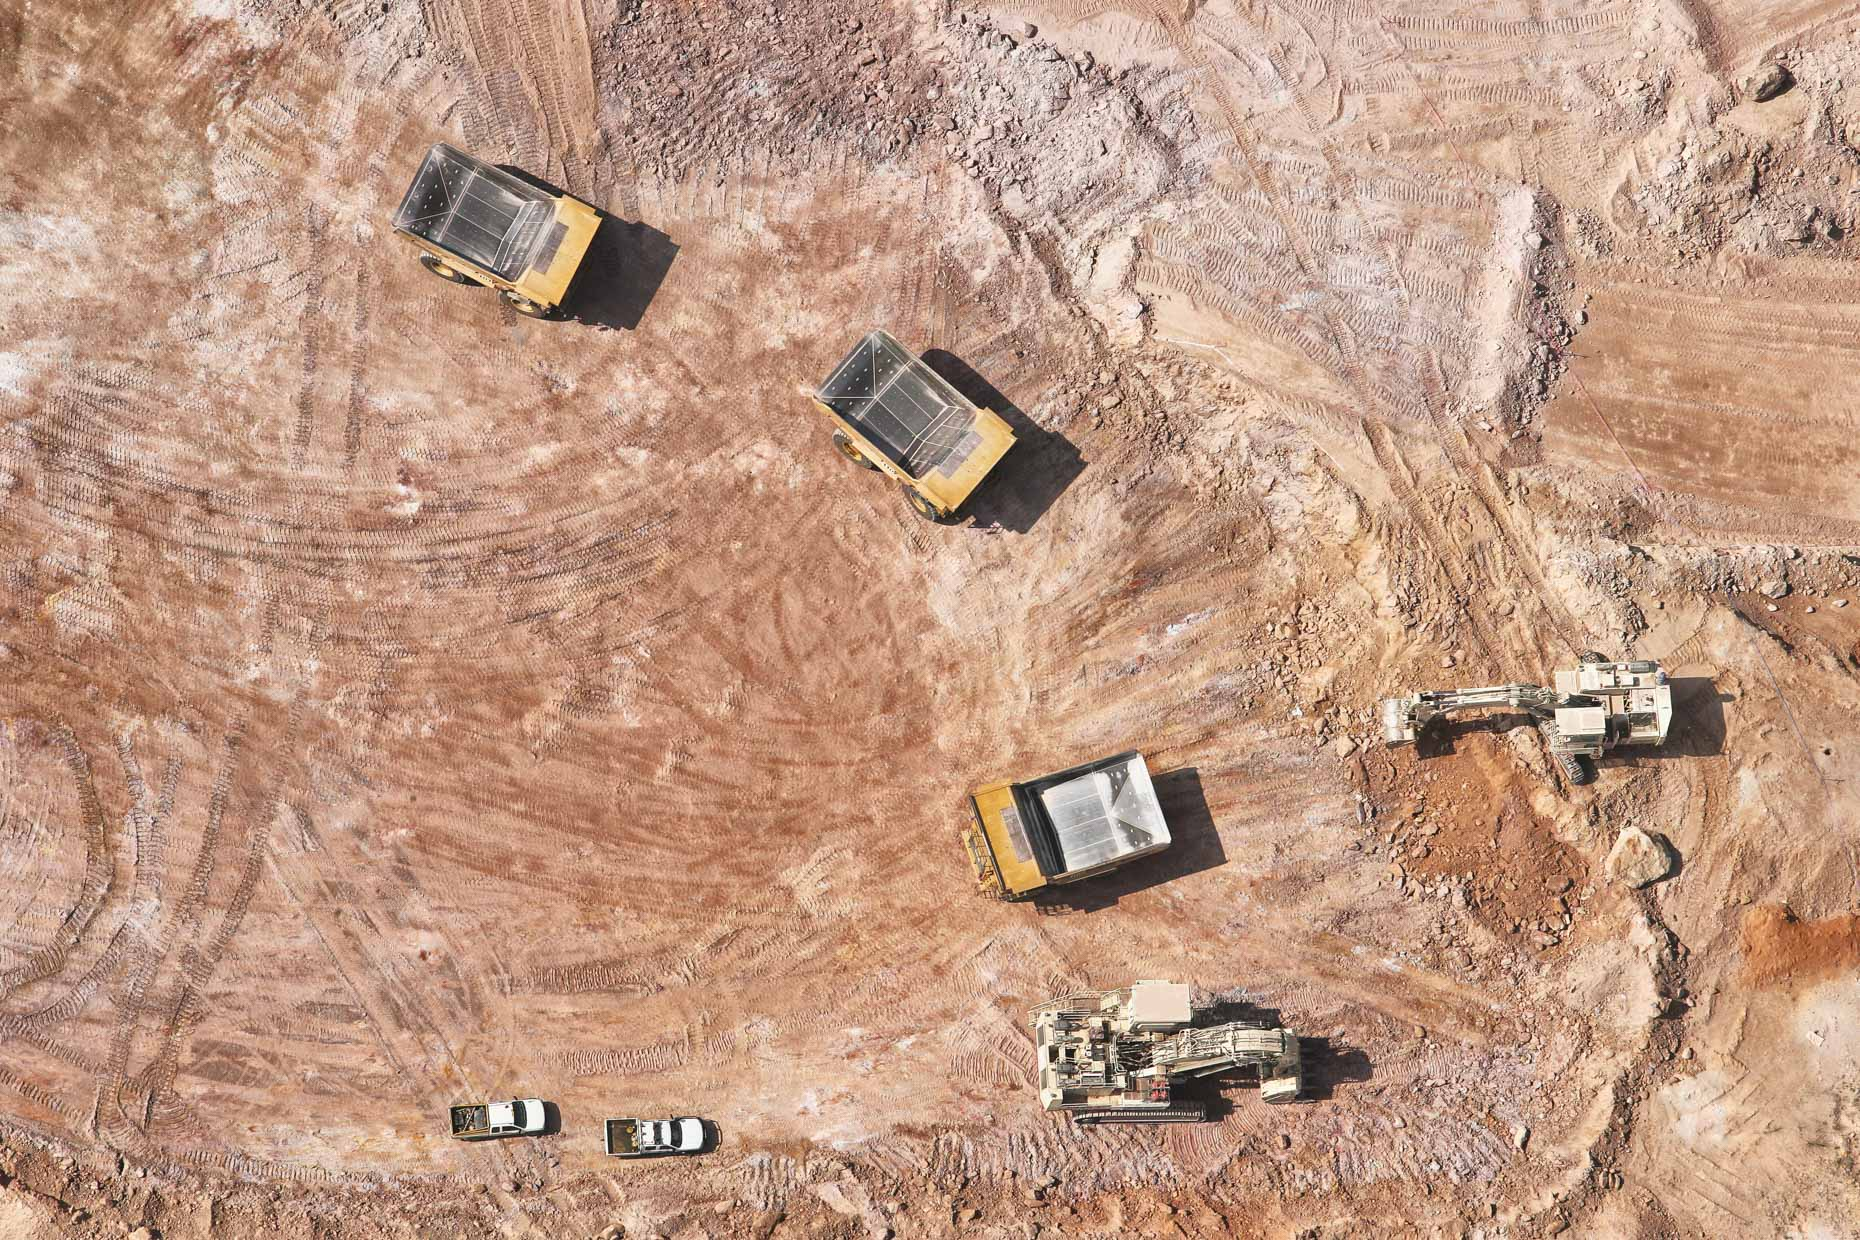 Aerial view of large mining equipment in Laos